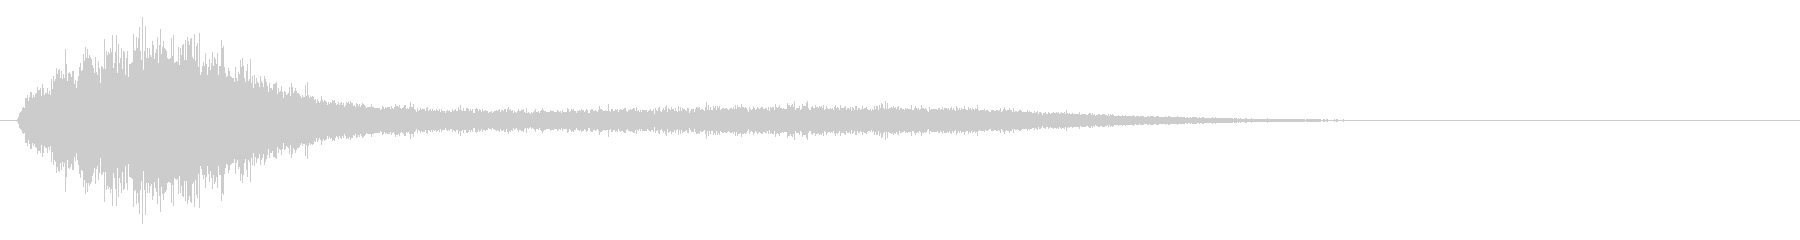 Sounds of chanting and activating magic #5's unreproduced waveform